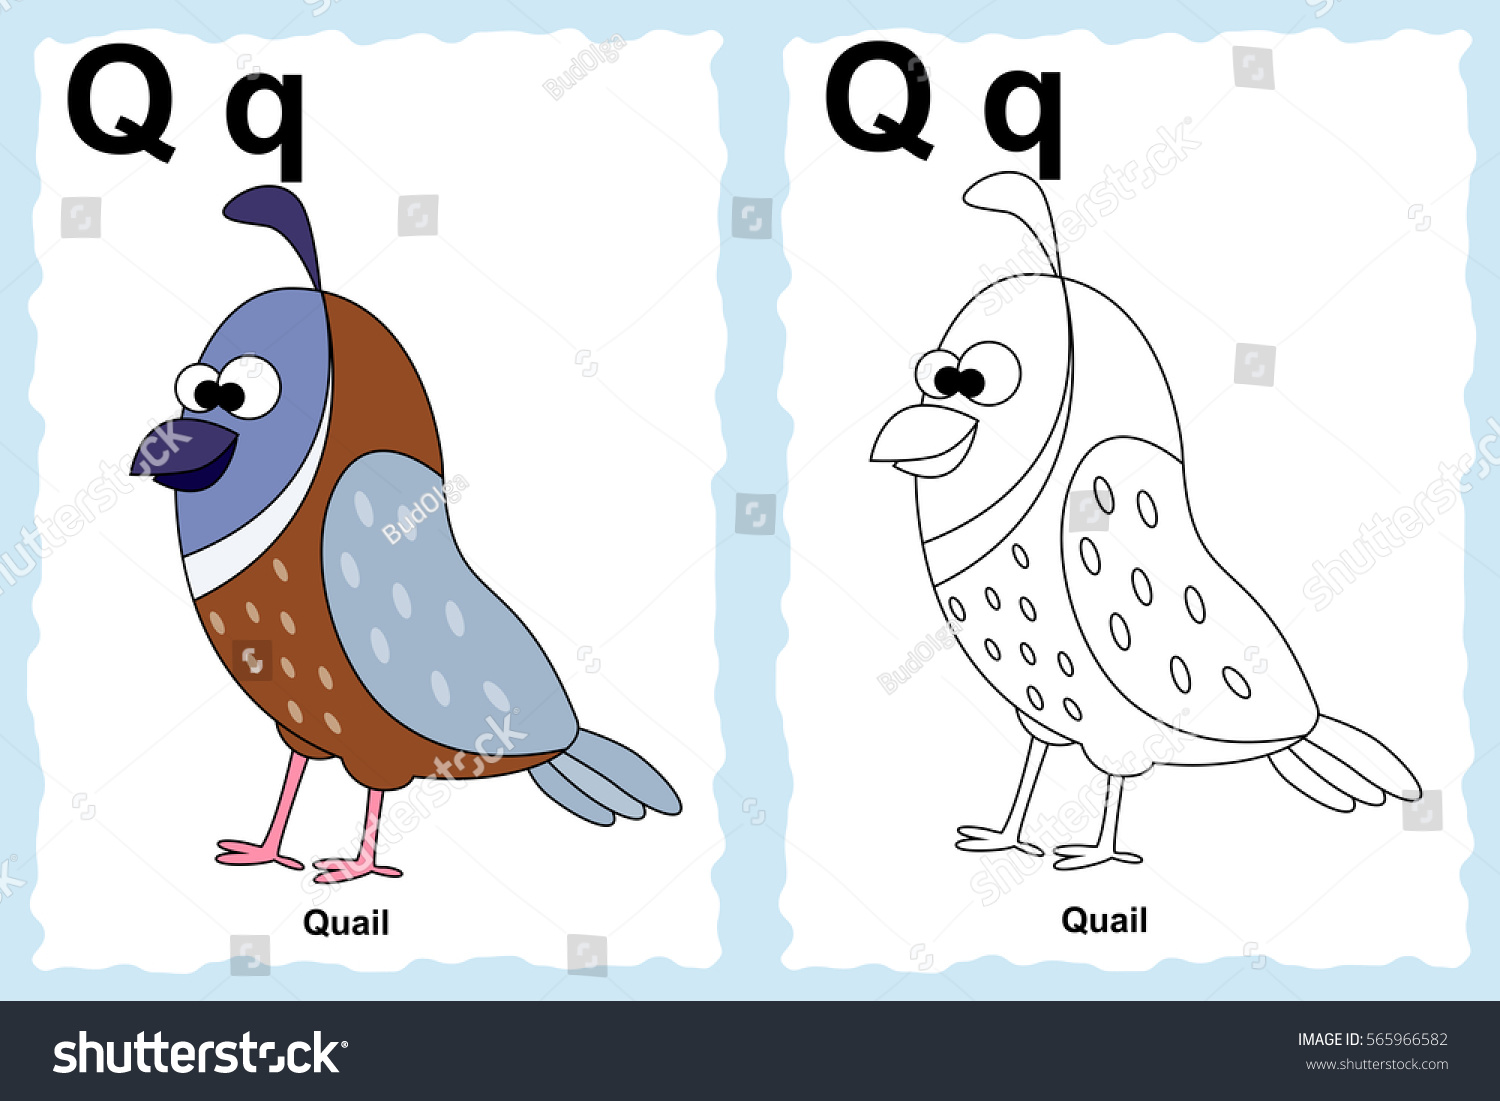 Alphabet coloring book page with outline clip art to color letter q cartoon quail coloring page for nursery school vector